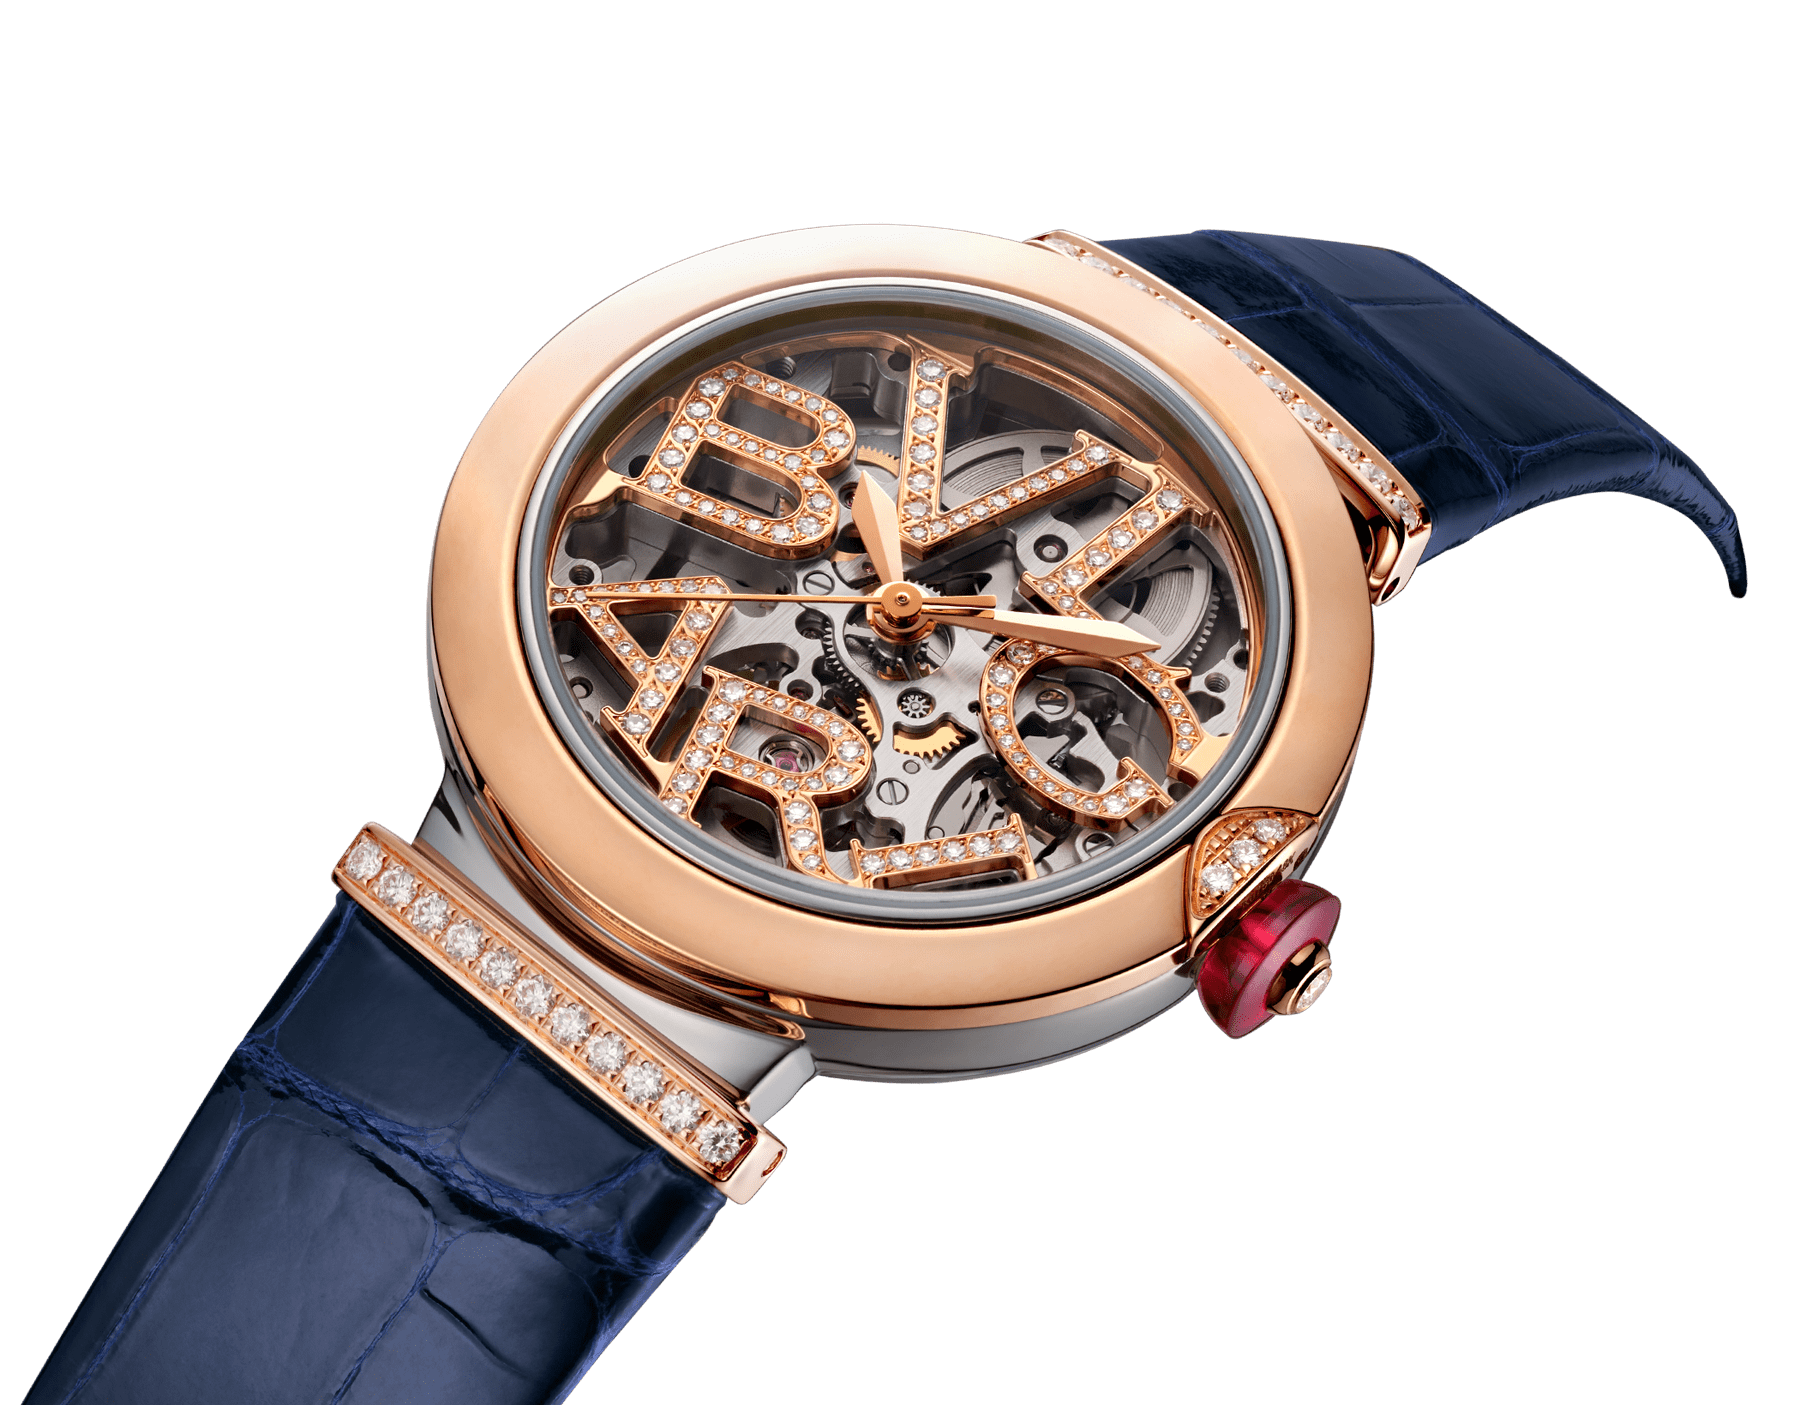 LVCEA Skeleton watch with mechanical manufacture movement, automatic winding and skeleton execution, stainless steel and 18 kt rose gold case, 18 kt rose gold openwork BVLGARI logo dial set with brilliant-cut diamonds and blue alligator bracelet with 18 kt rose gold links set with diamonds 103502 image 2